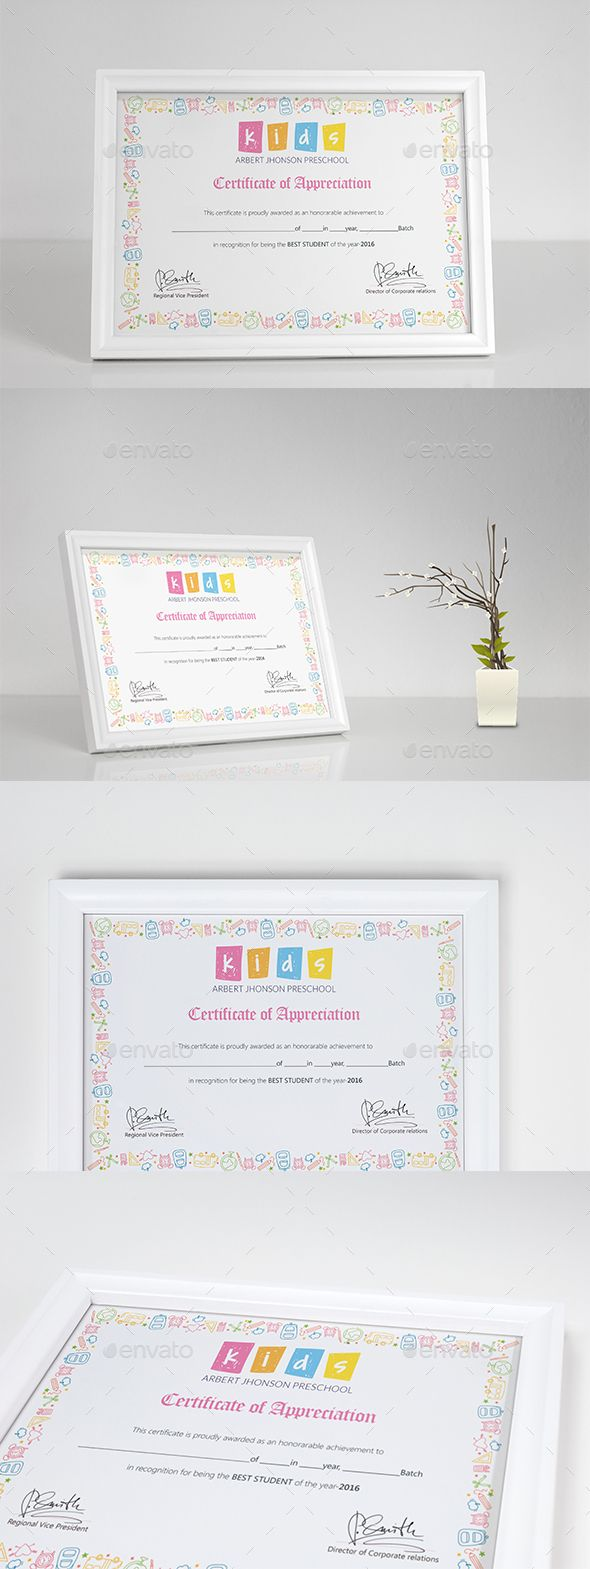 17 best ideas about certificate templates on pinterest